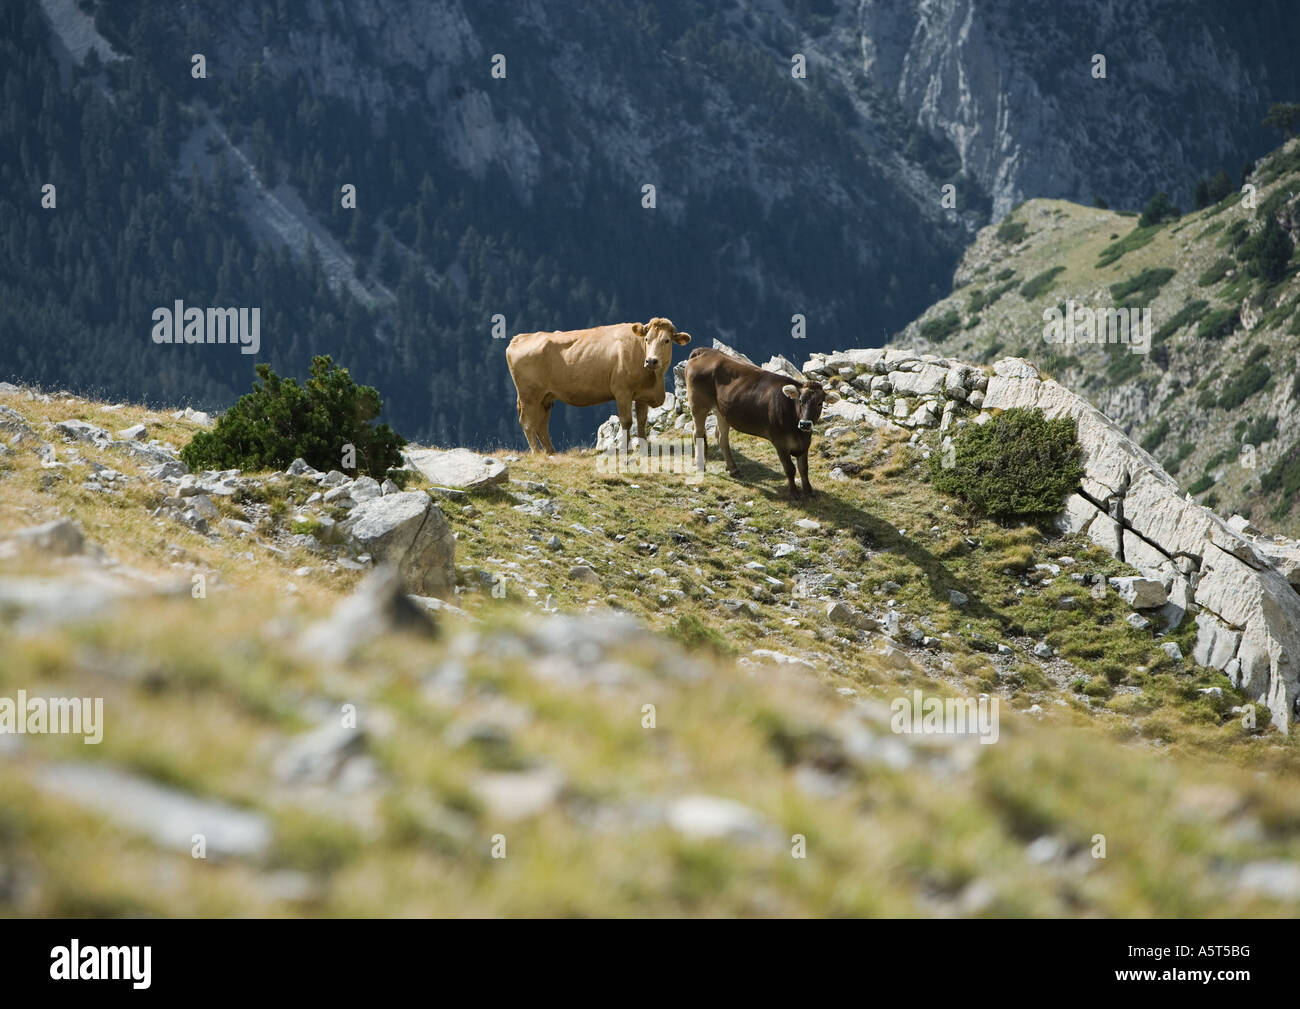 Cows standing on mountainside - Stock Image